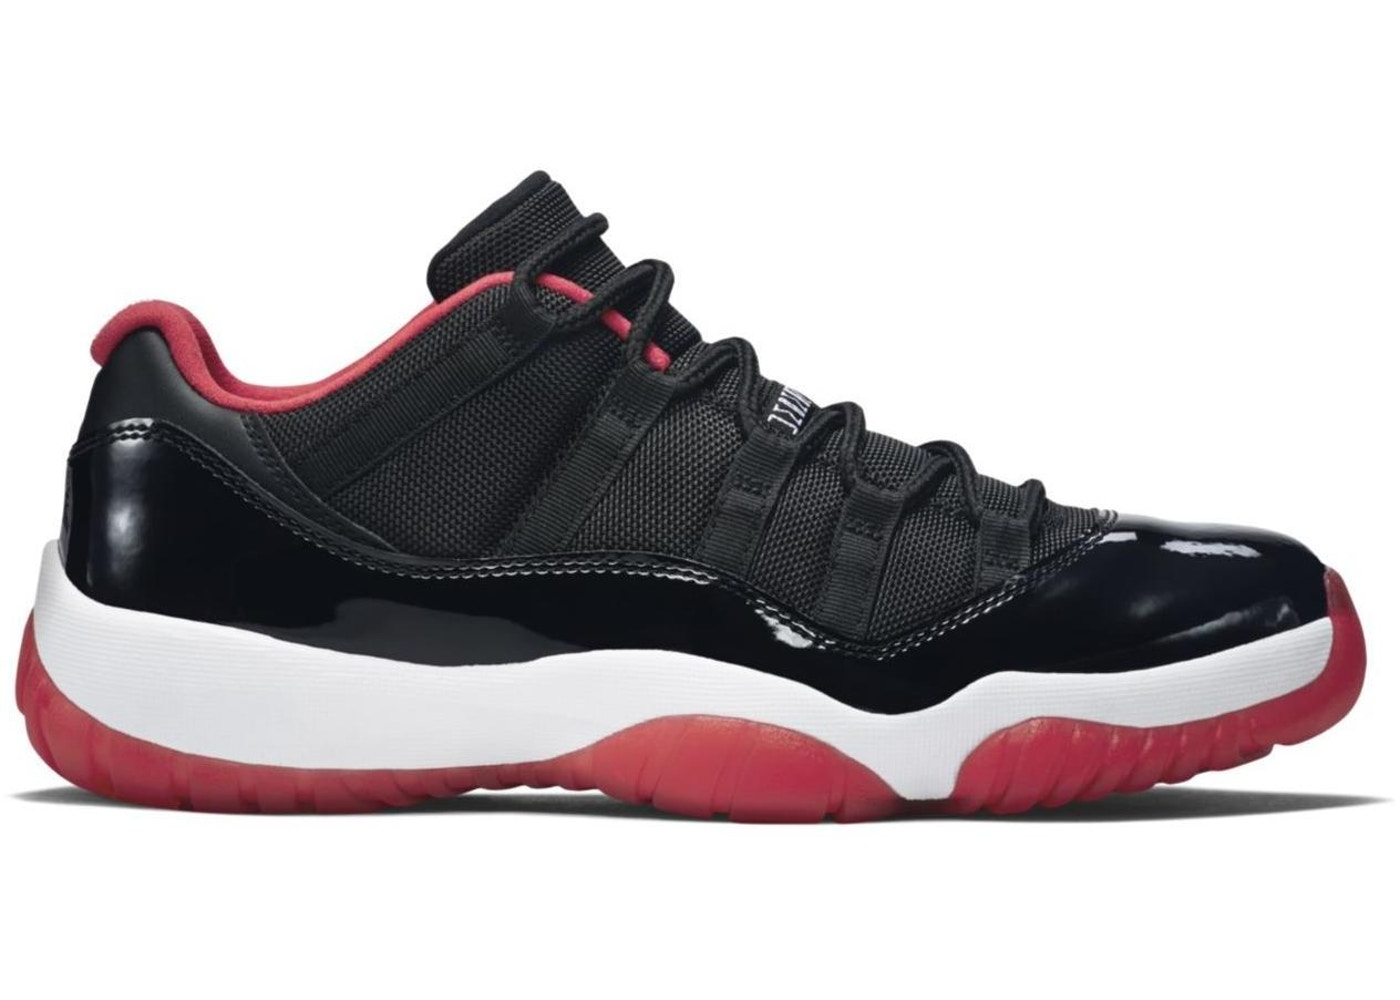 Jordan 11 Retro Low Bred - 528895-012 0366084fd